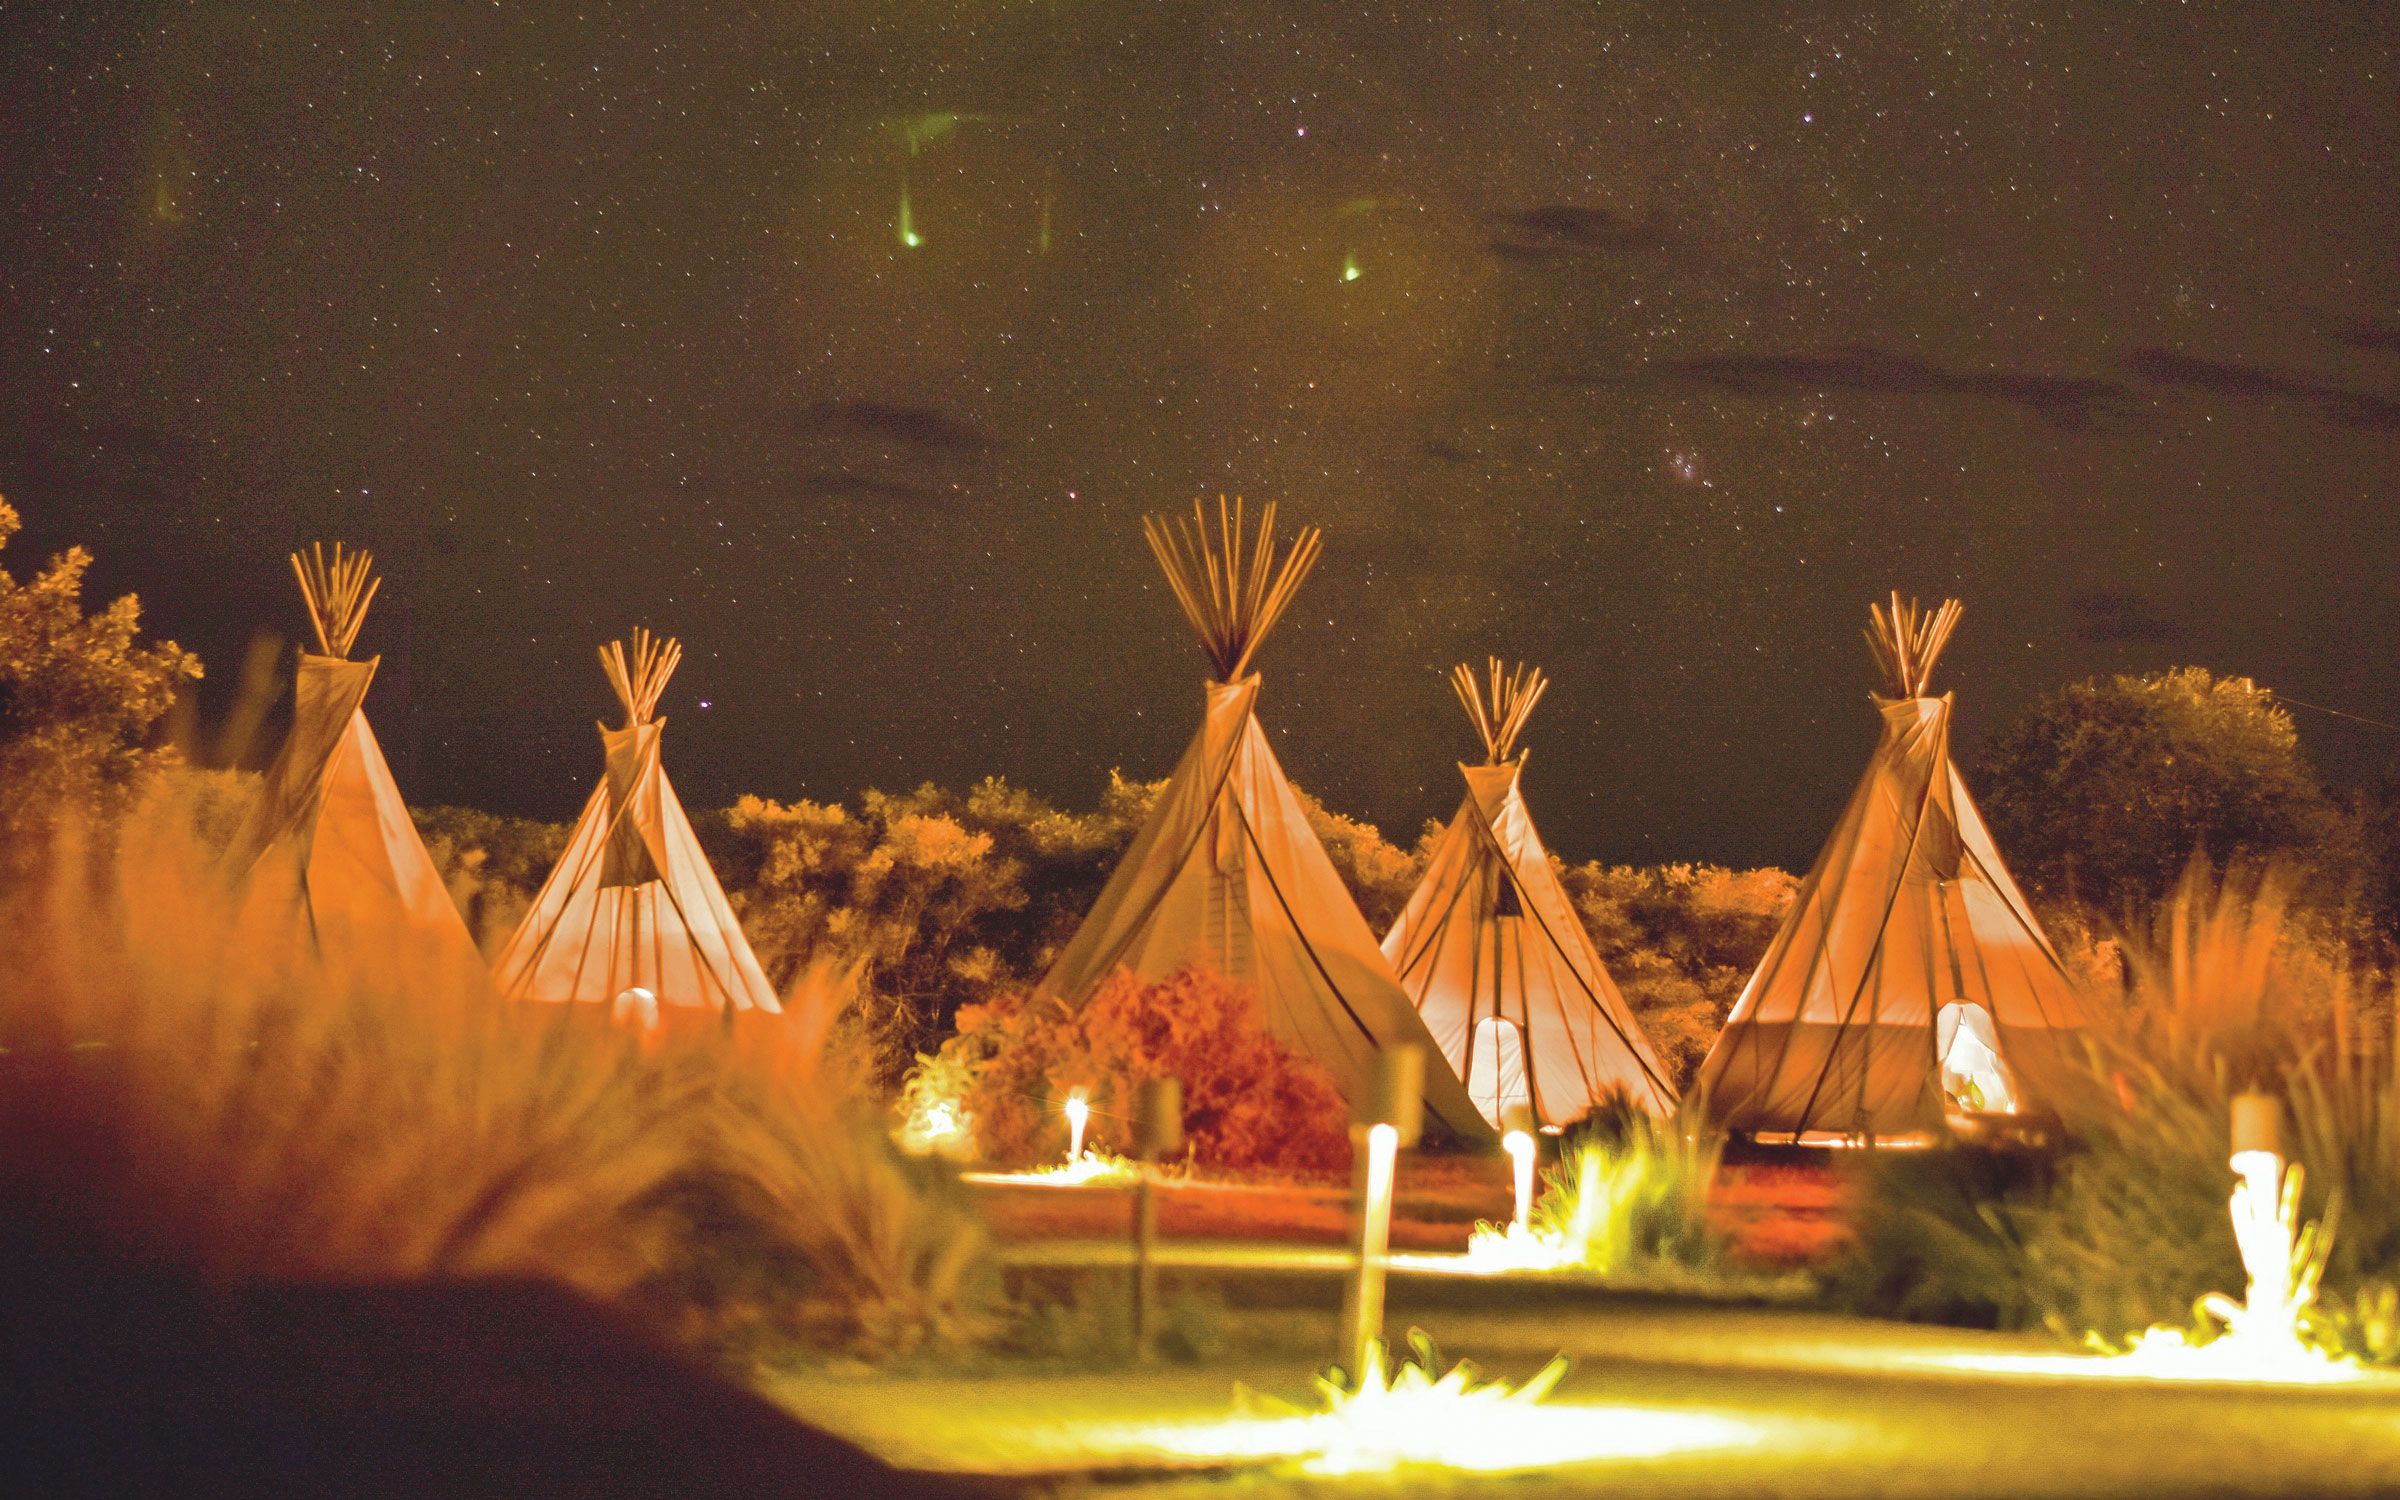 Sioux-style tepees at El Cosmico, a bohemian, nomadic hotel and campground in Marfa, Texas